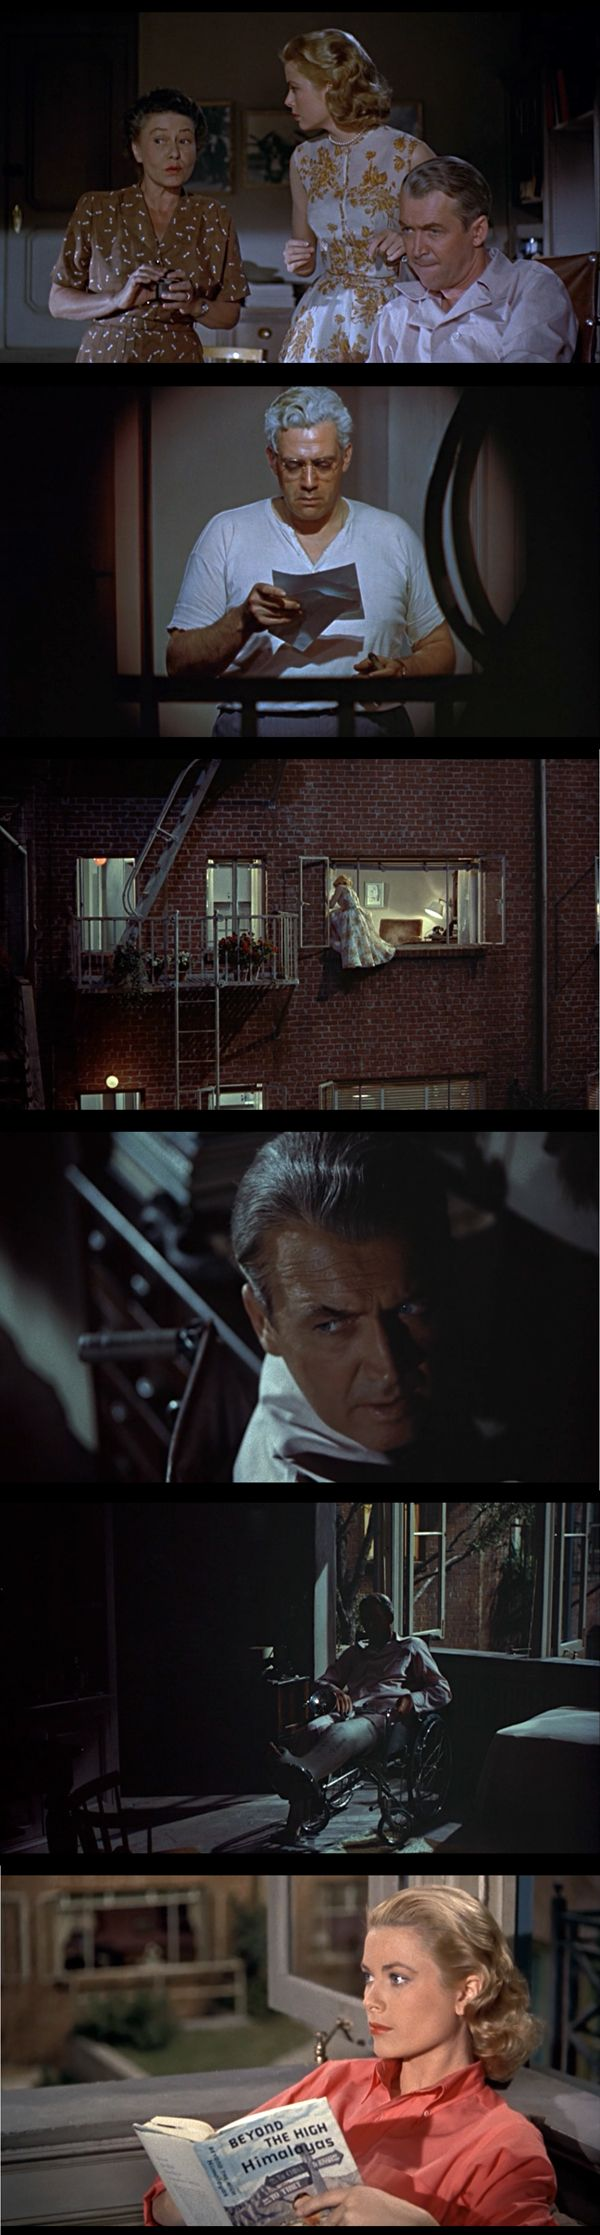 rear window cinematography essay A brief essay on the use of optical pov shots in alfred hitchcock's rear window.